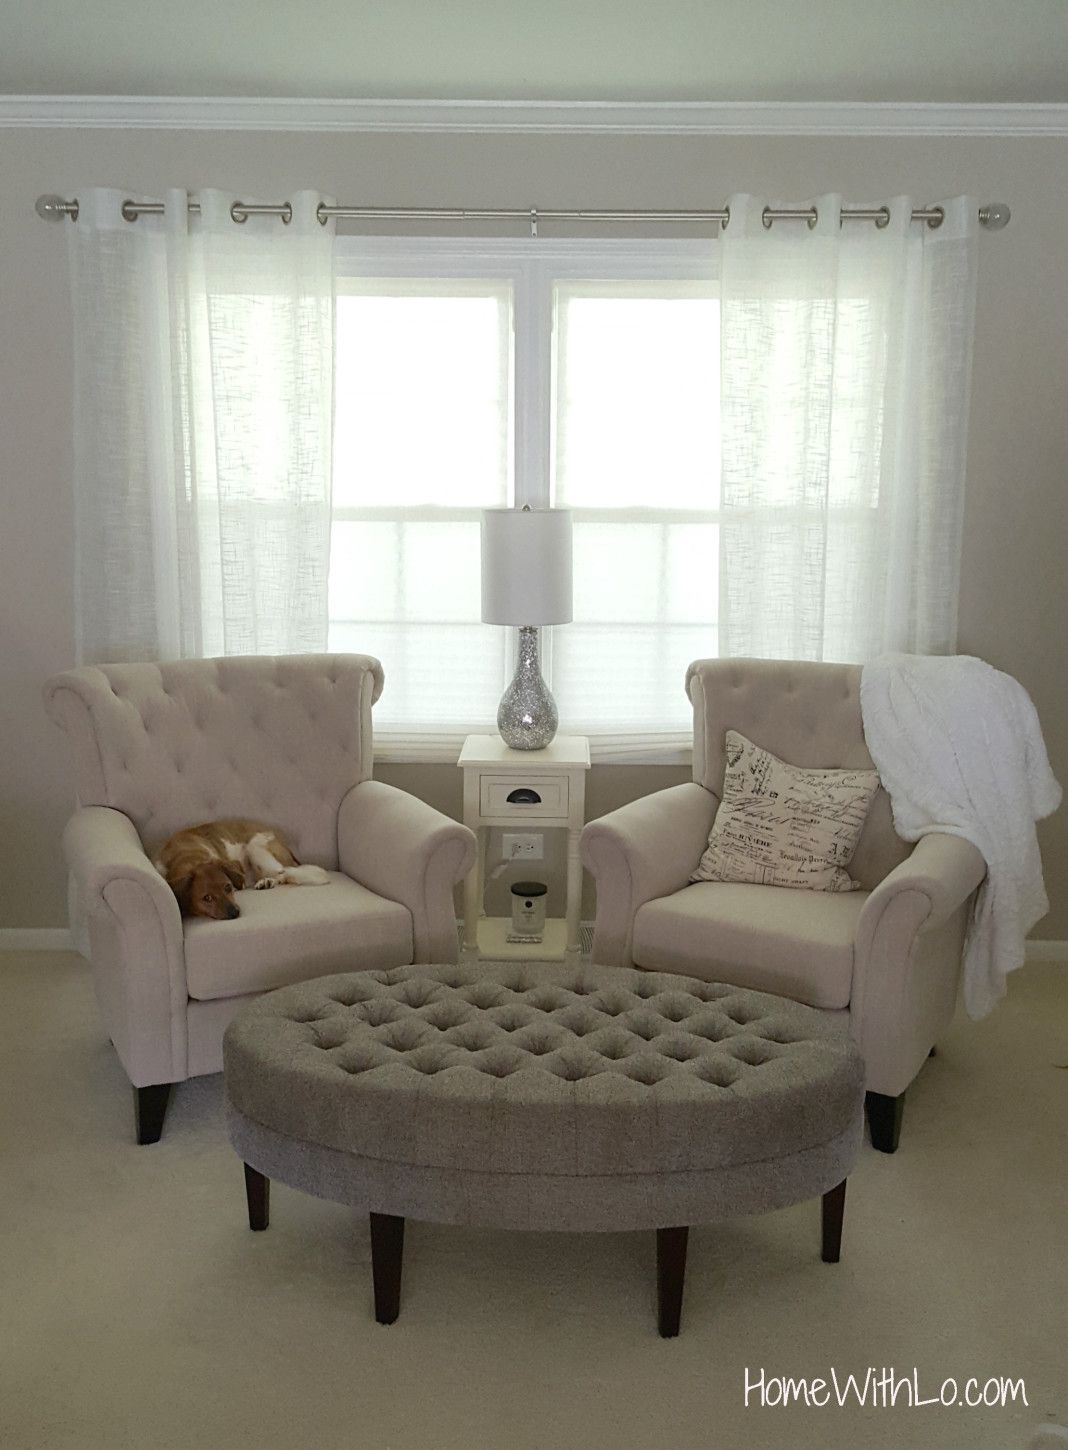 Best Double Tufted Arm Chairs With Tufted Ottoman For A Formal 400 x 300